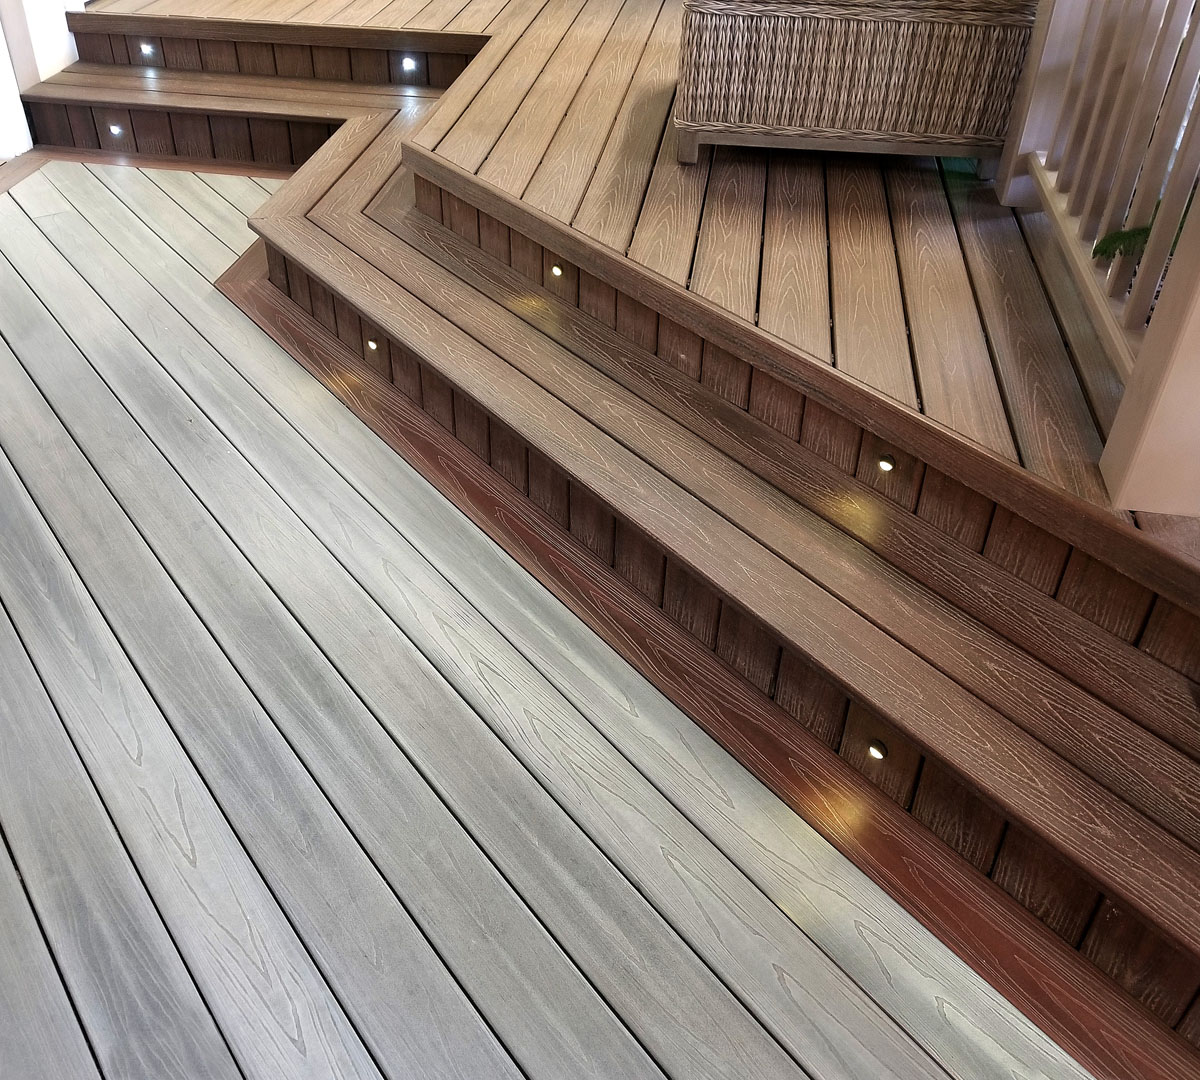 Contact building materials sales industry leading design for Decking material options